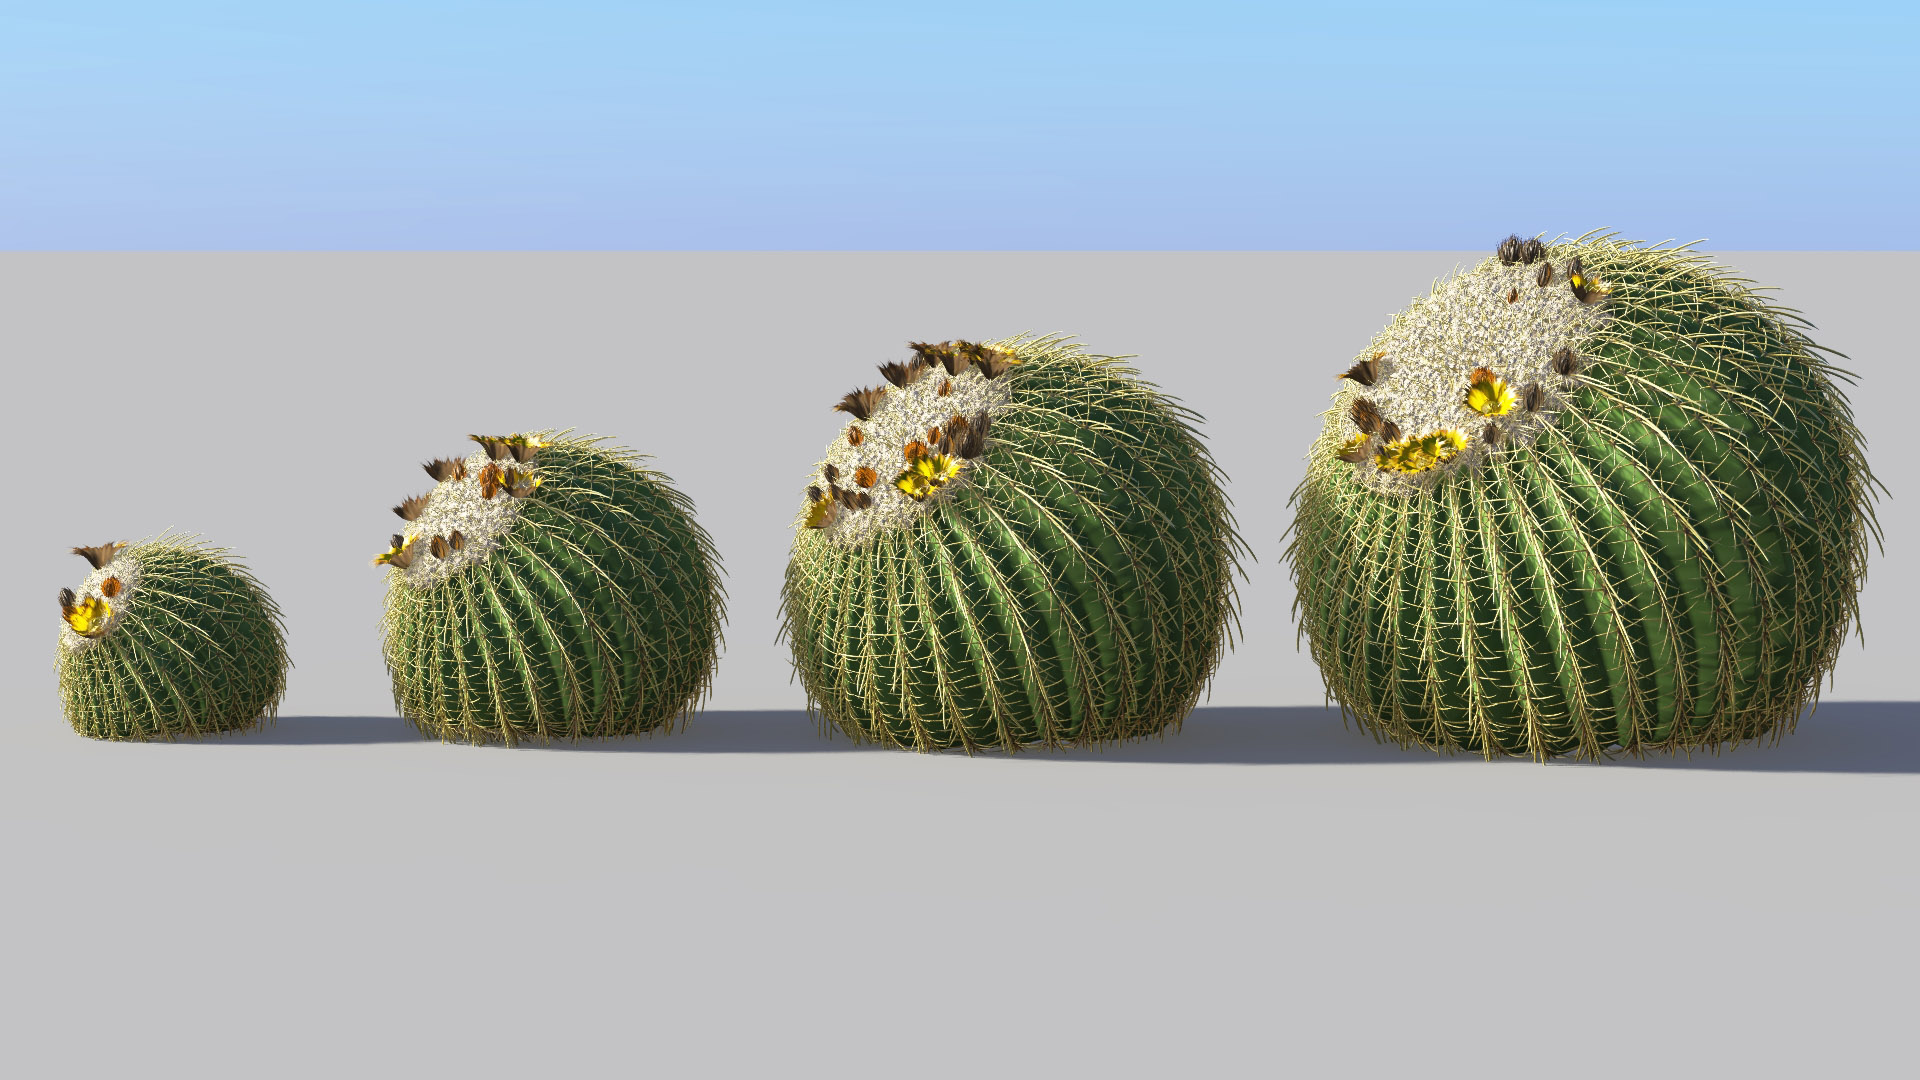 3D model of the Golden barrel cactus Echinocactus grusonii